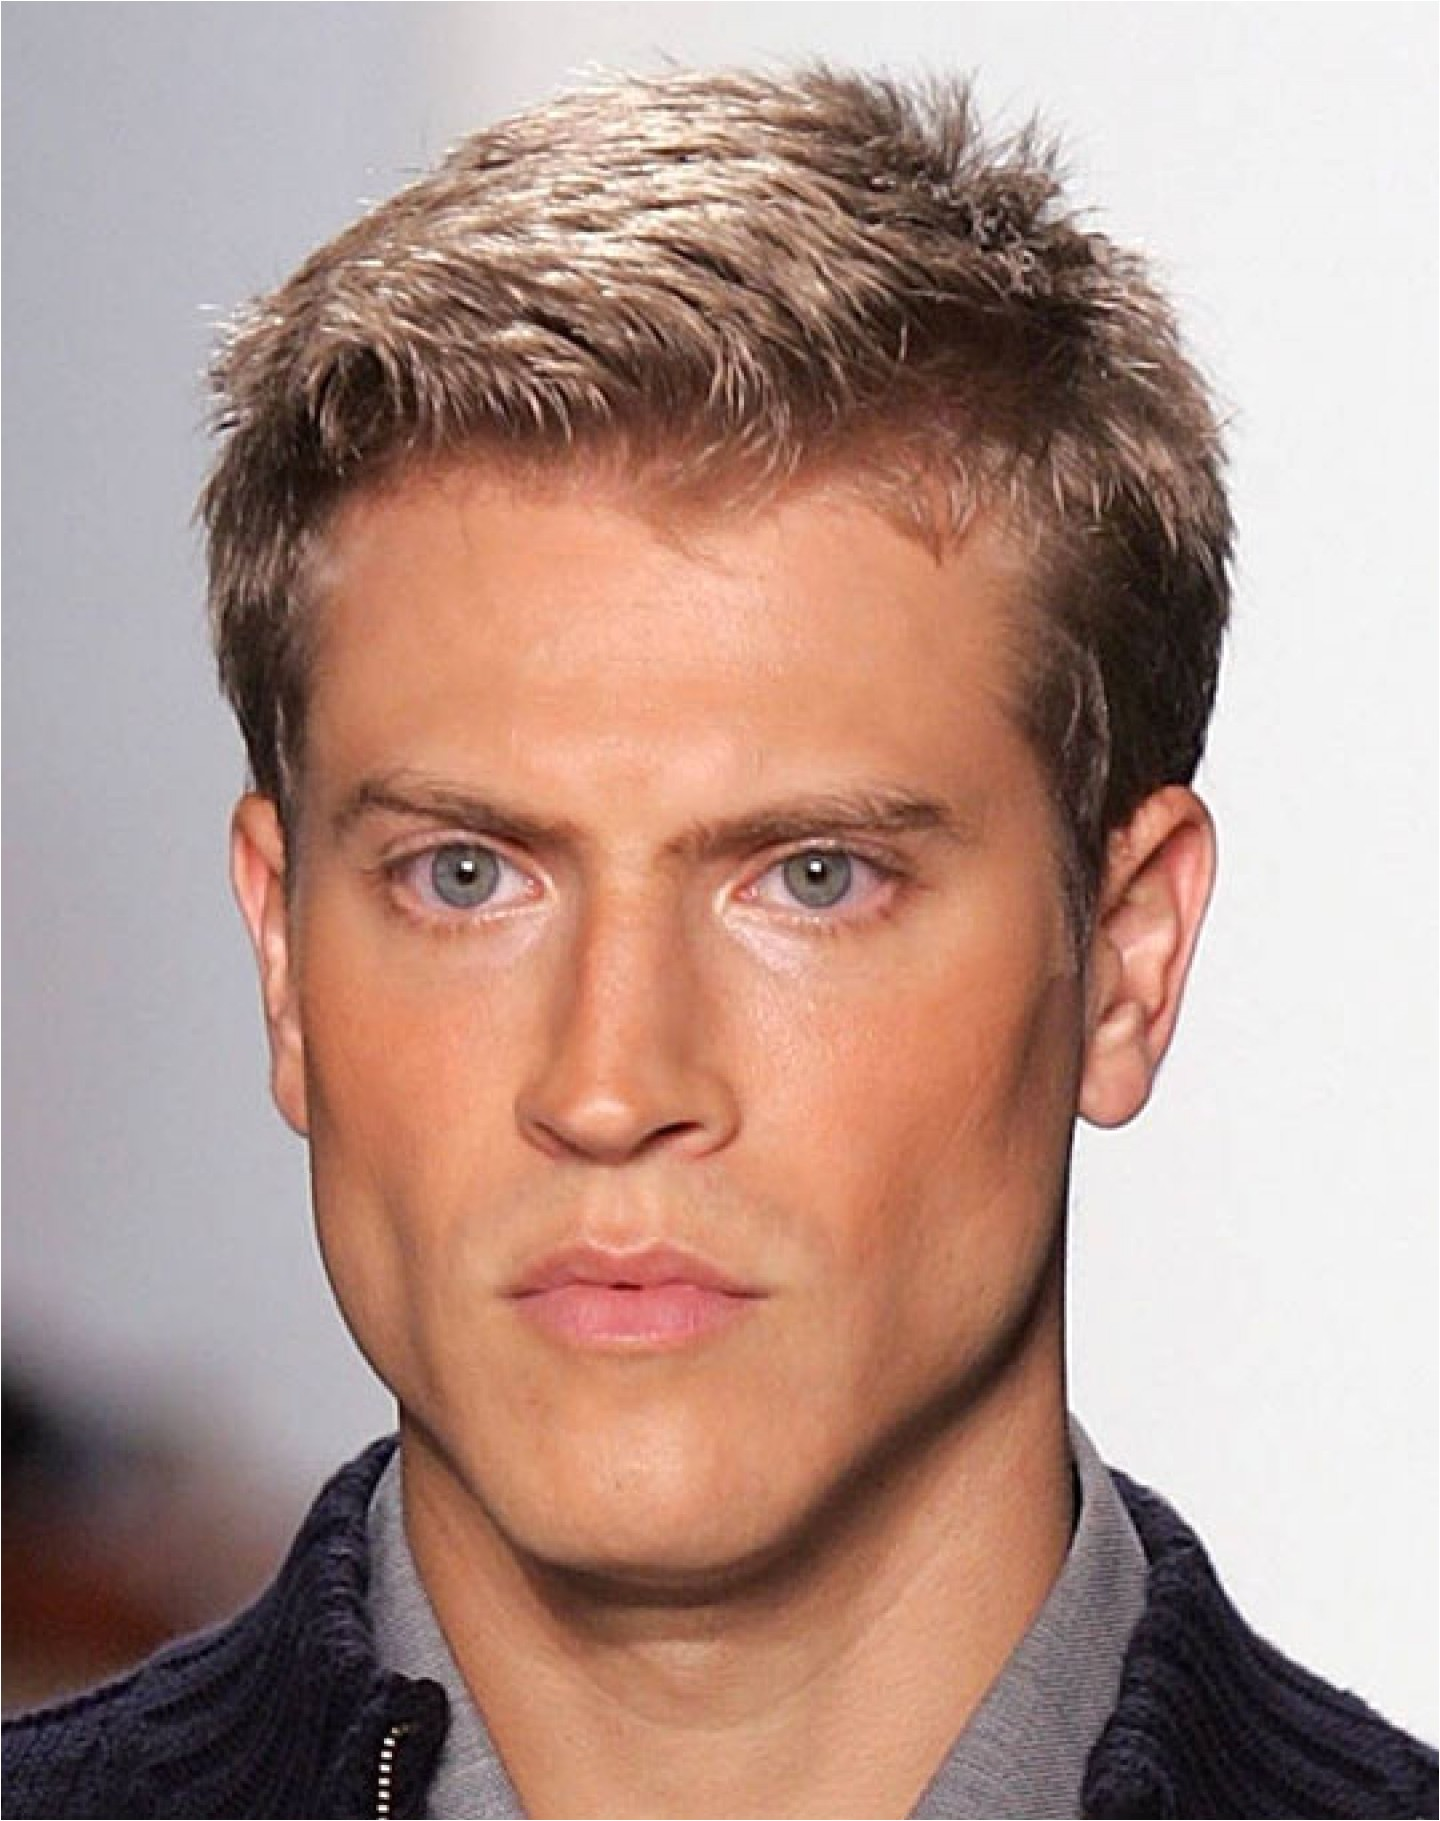 Mens Short Haircut Gallery 5 Excellent Stylish Mens Haircuts